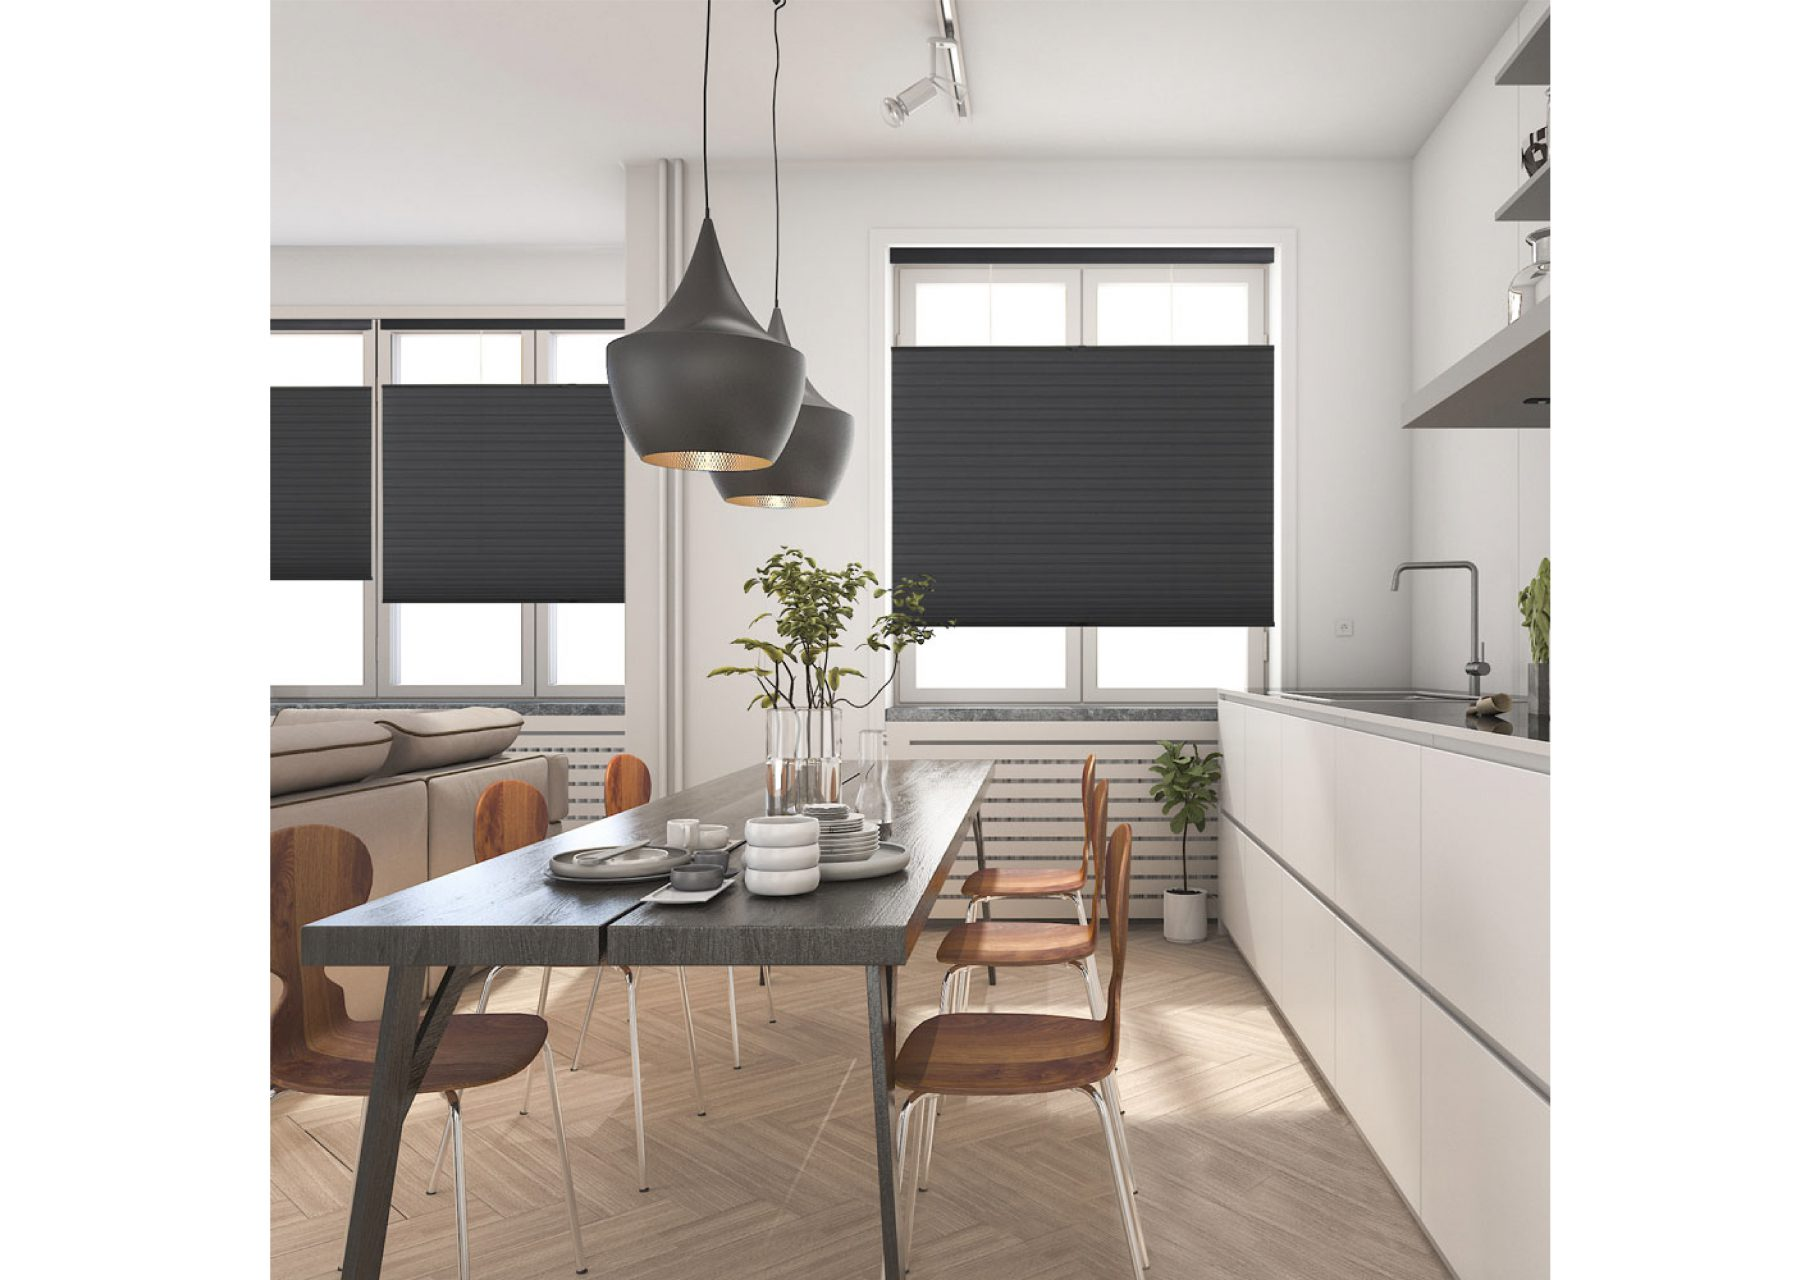 Top-down/Bottom-Up cellular shades for the dining room